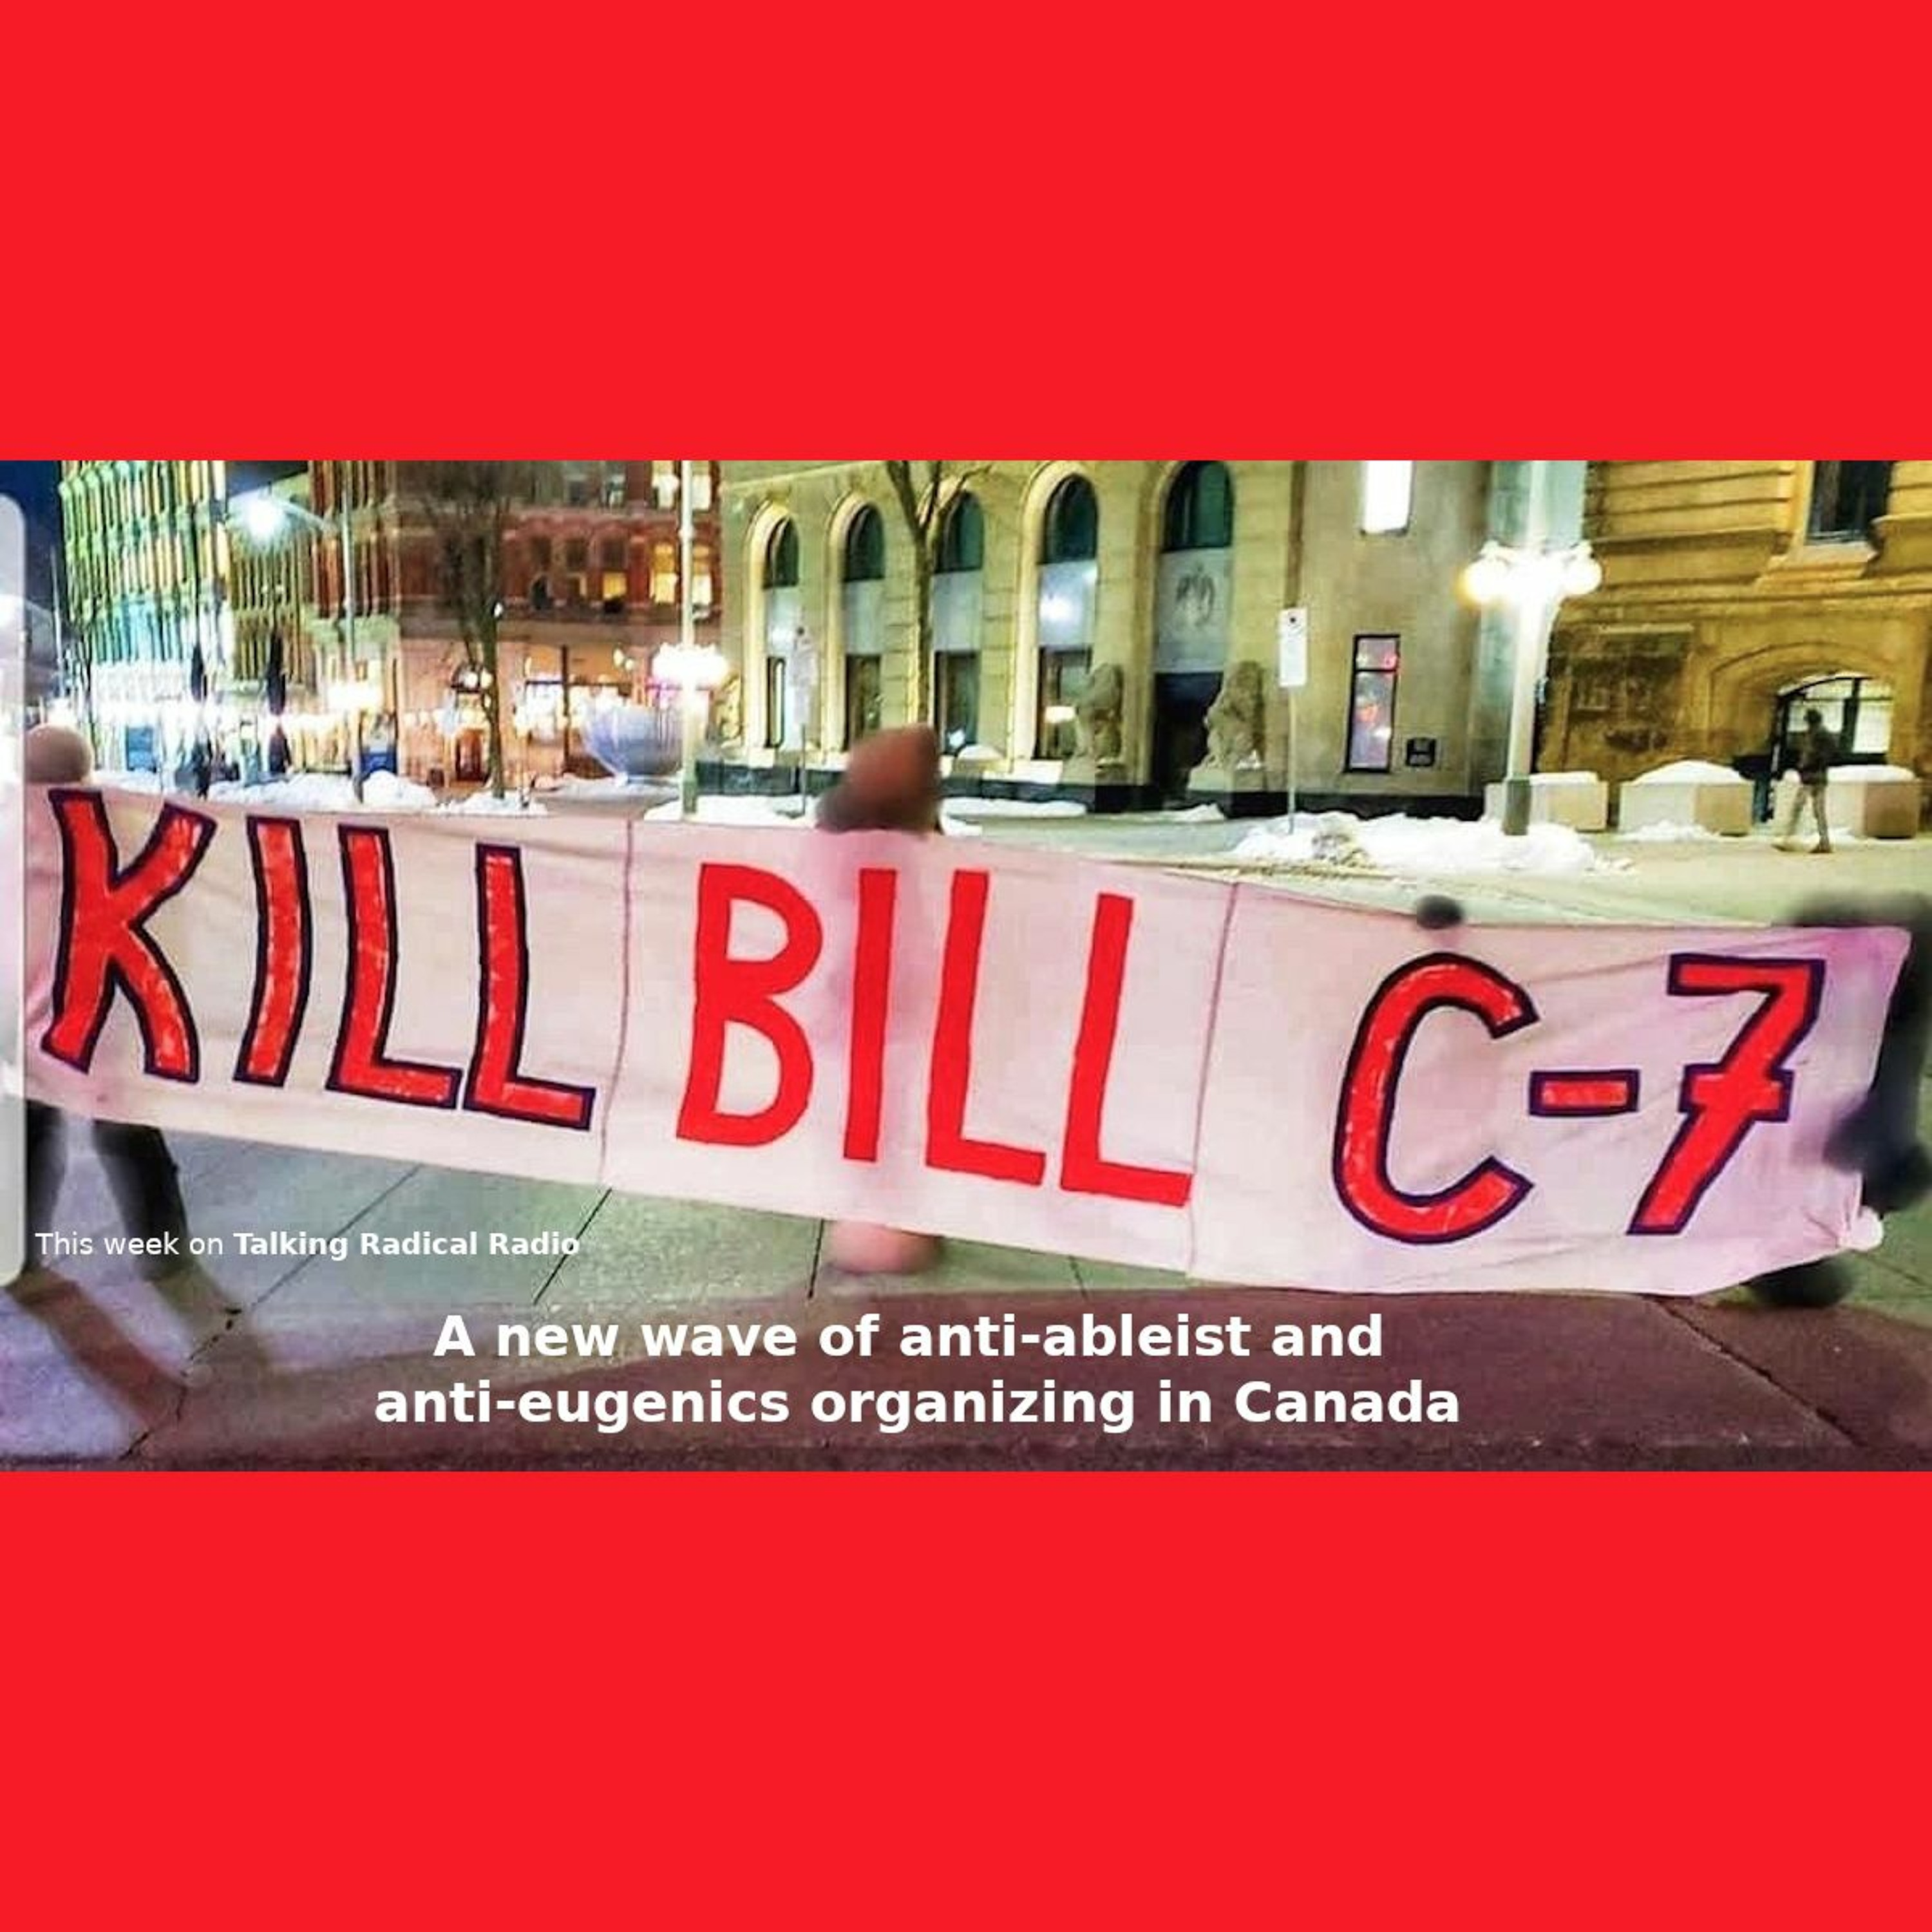 A new wave of anti-ableist and anti-eugenics organizing in Canada